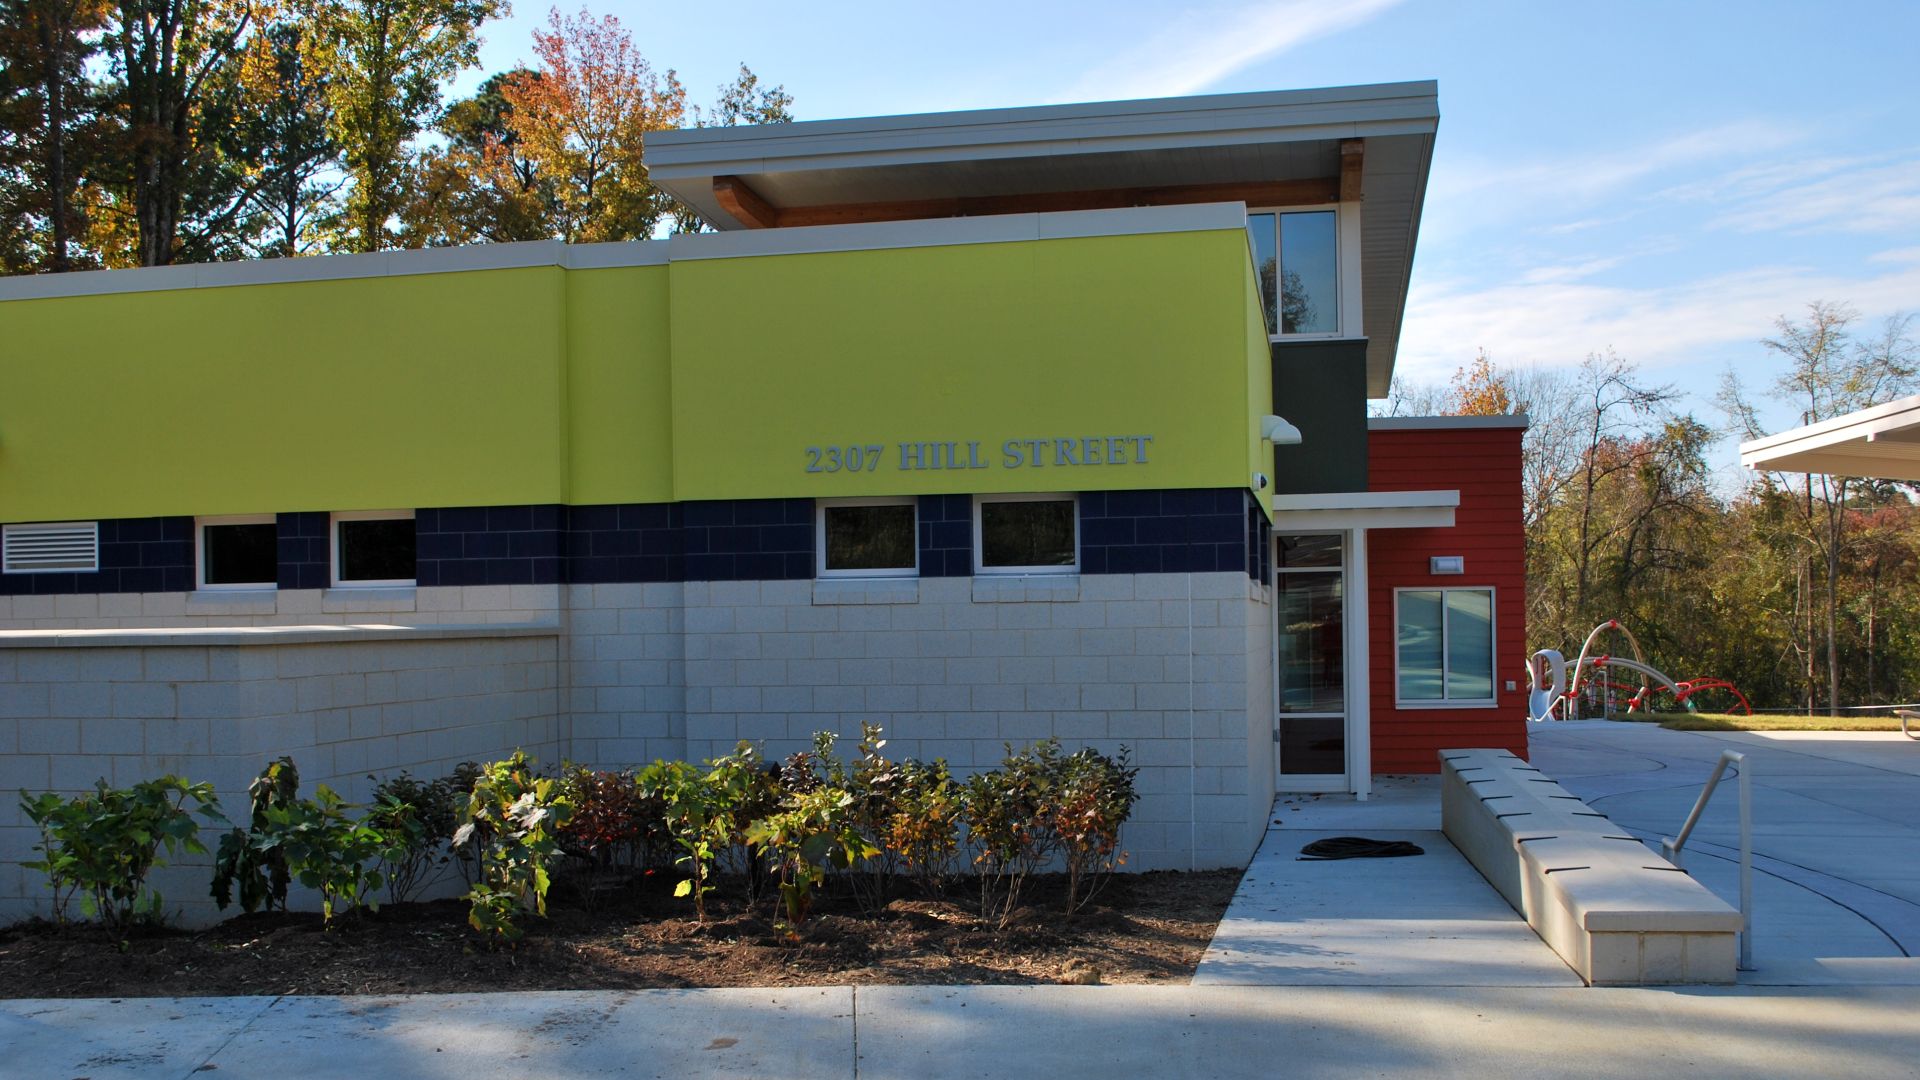 Side view of the Hill Street Community Center